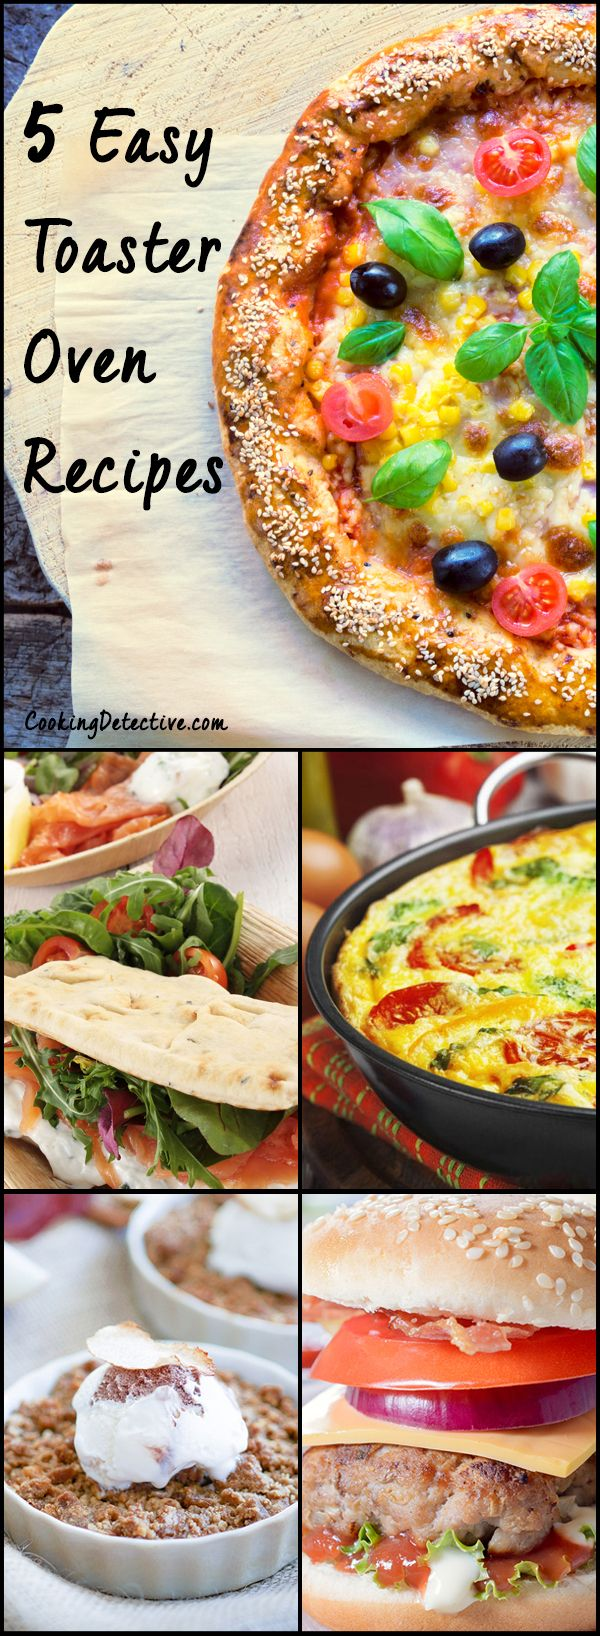 Check out these easy toaster oven recipes if you are simply looking for an easy, tasty and quick recipe to cook tonight or maybe even tomorrow breakfast.